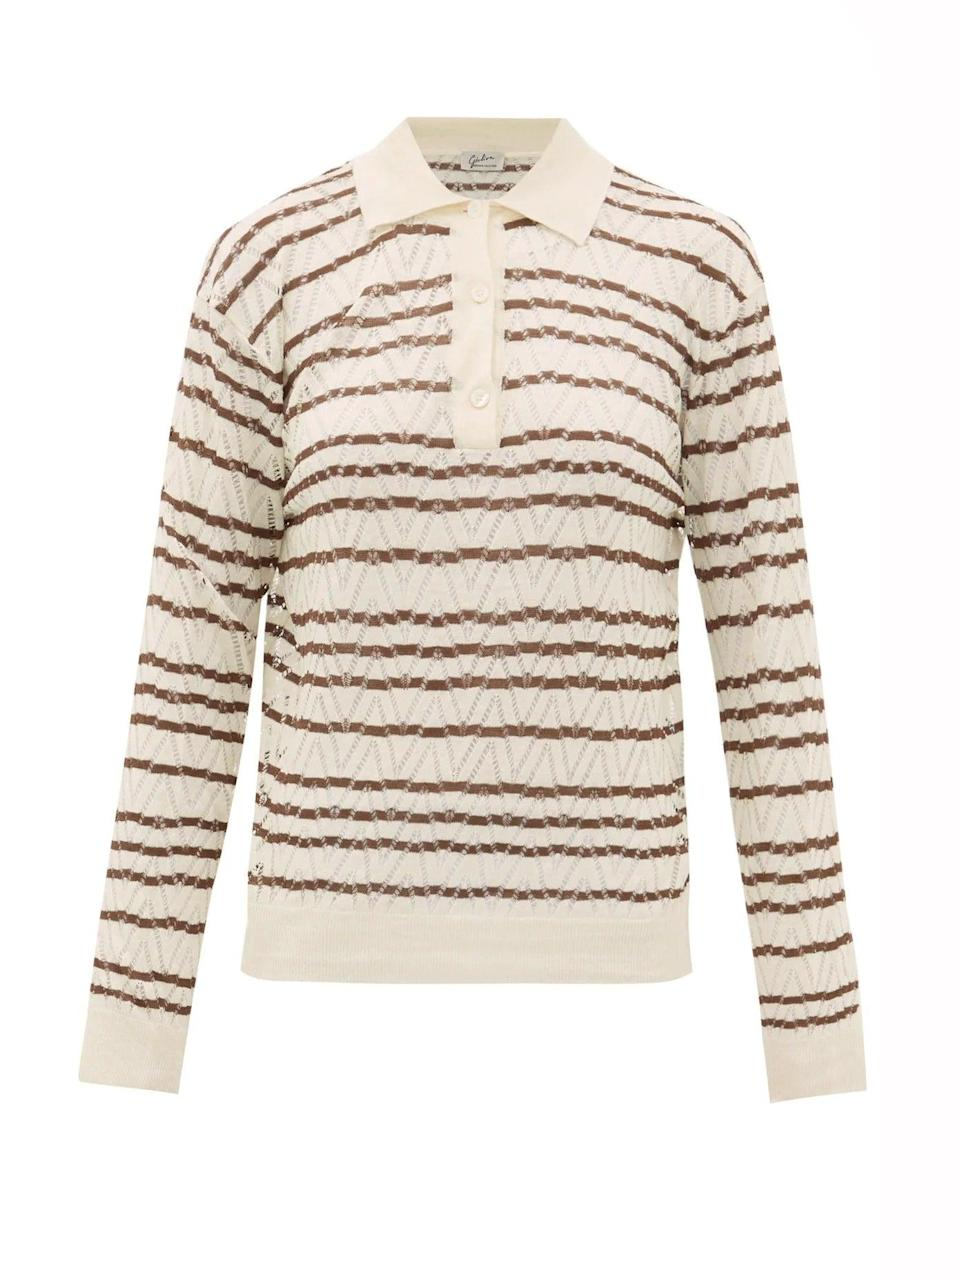 """<br><br><strong>Giuliva Heritage Collection</strong> The Emera Striped Silk-Blend Polo Shirt, $, available at <a href=""""https://www.matchesfashion.com/products/Giuliva-Heritage-Collection-The-Emera-striped-silk-blend-polo-shirt-1327418"""" rel=""""nofollow noopener"""" target=""""_blank"""" data-ylk=""""slk:Matches Fashion"""" class=""""link rapid-noclick-resp"""">Matches Fashion</a>"""